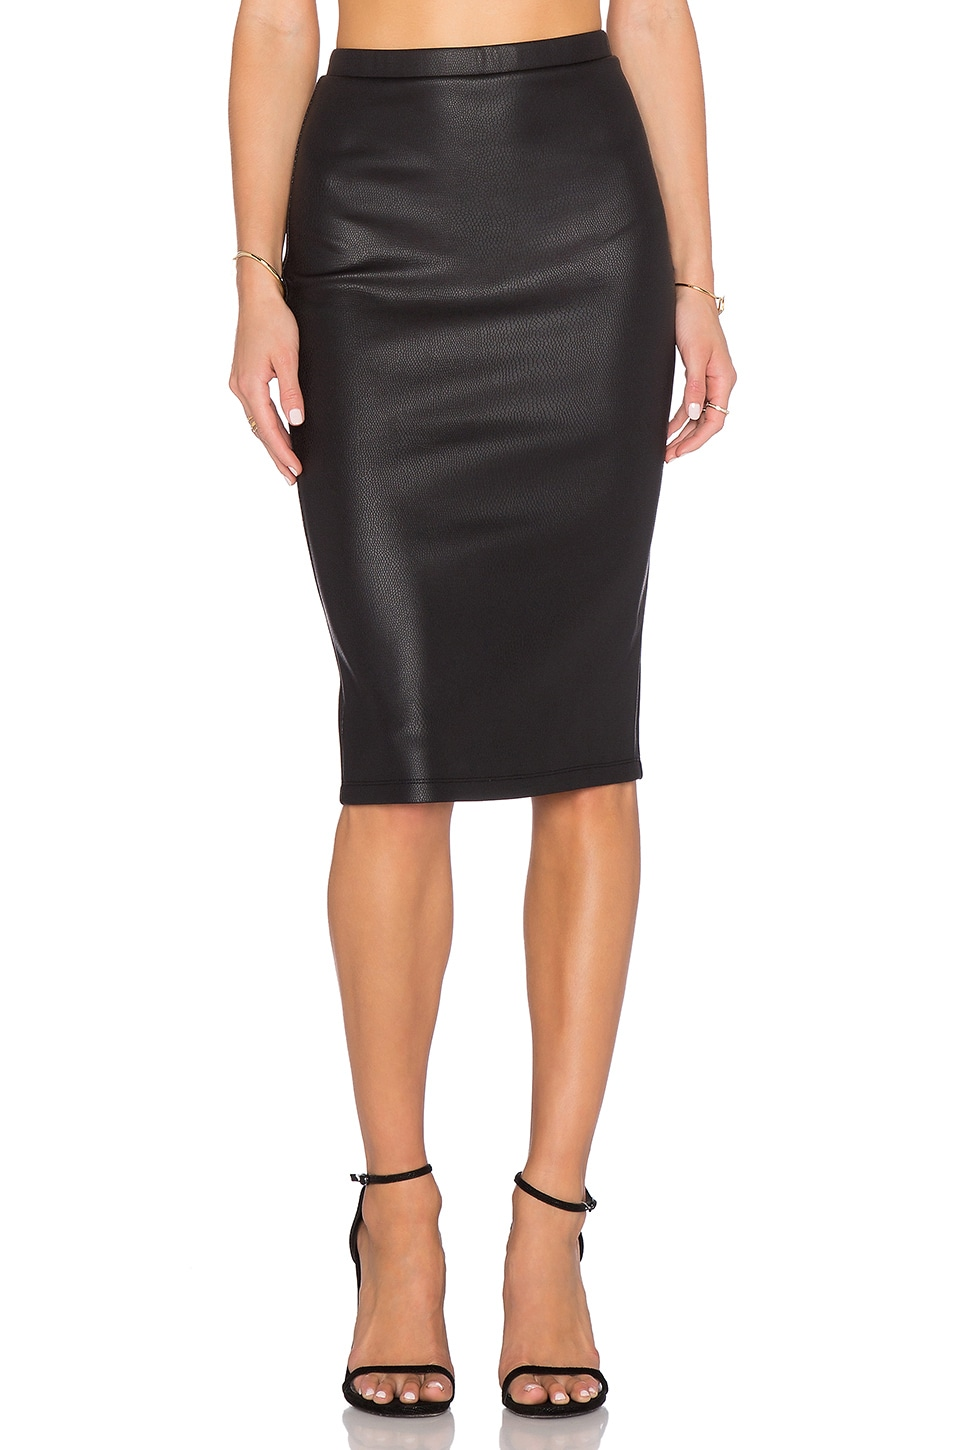 BB Dakota Kelan Snakeskin Pencil Skirt in Black